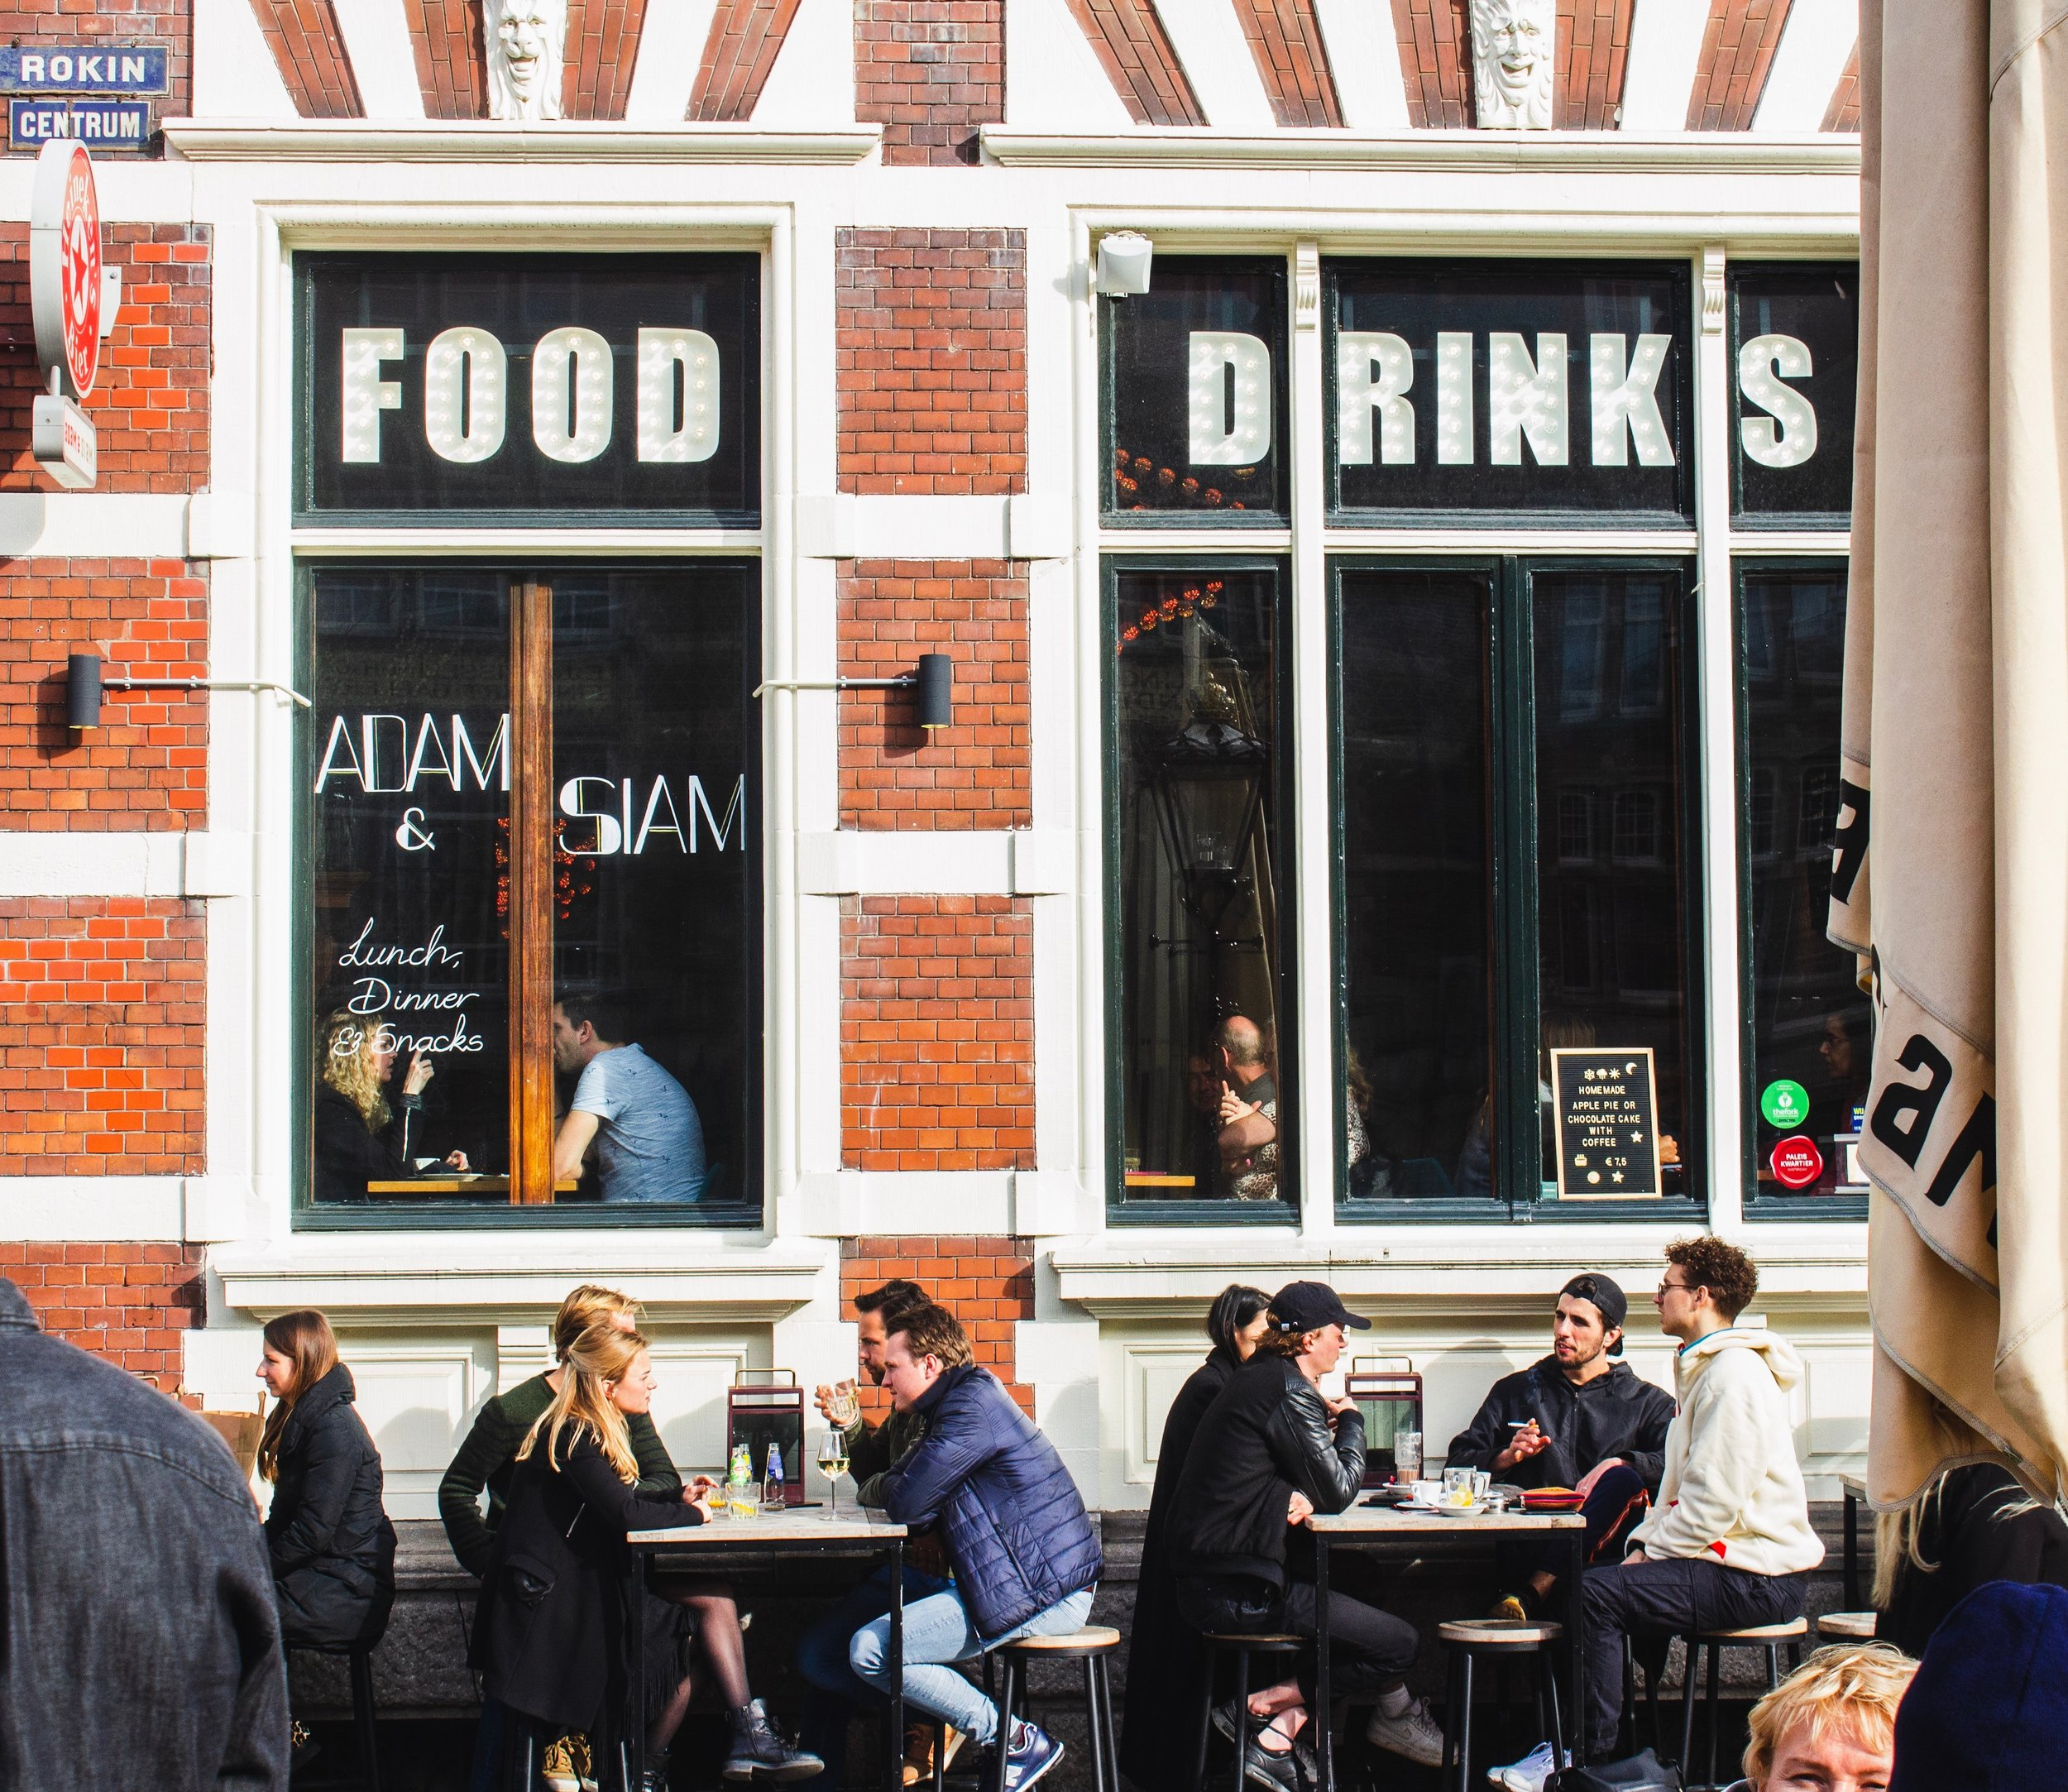 """A street view of people dining at tables on the street in front of a brick building with two big windows with the words """"FOOD, DRINKS"""" written on them"""